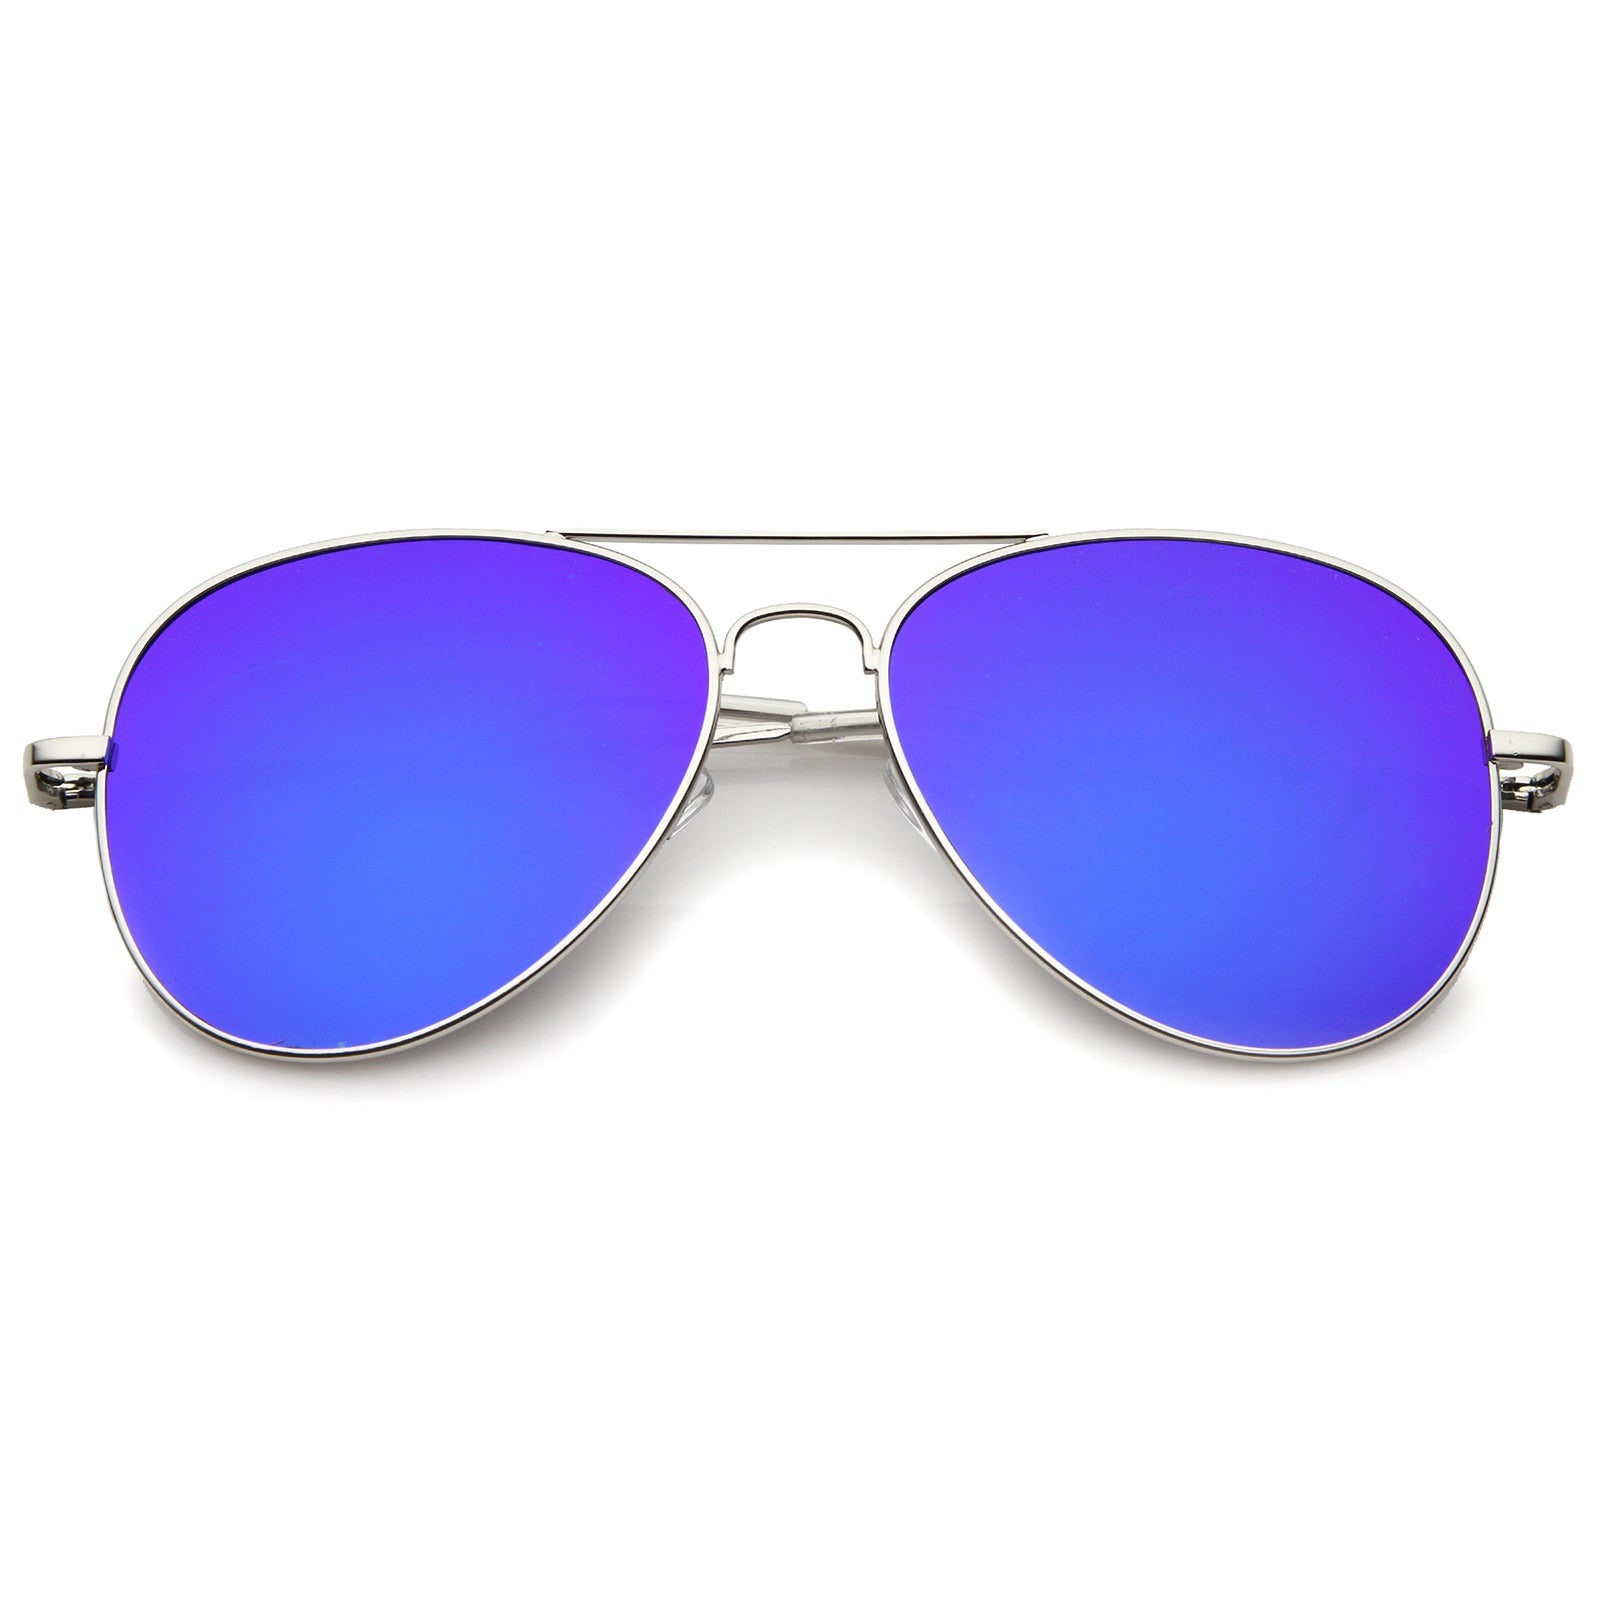 Small Full Metal Color Mirror Teardrop Flat Lens Aviator Sunglasses 56mm - sunglass.la - 5